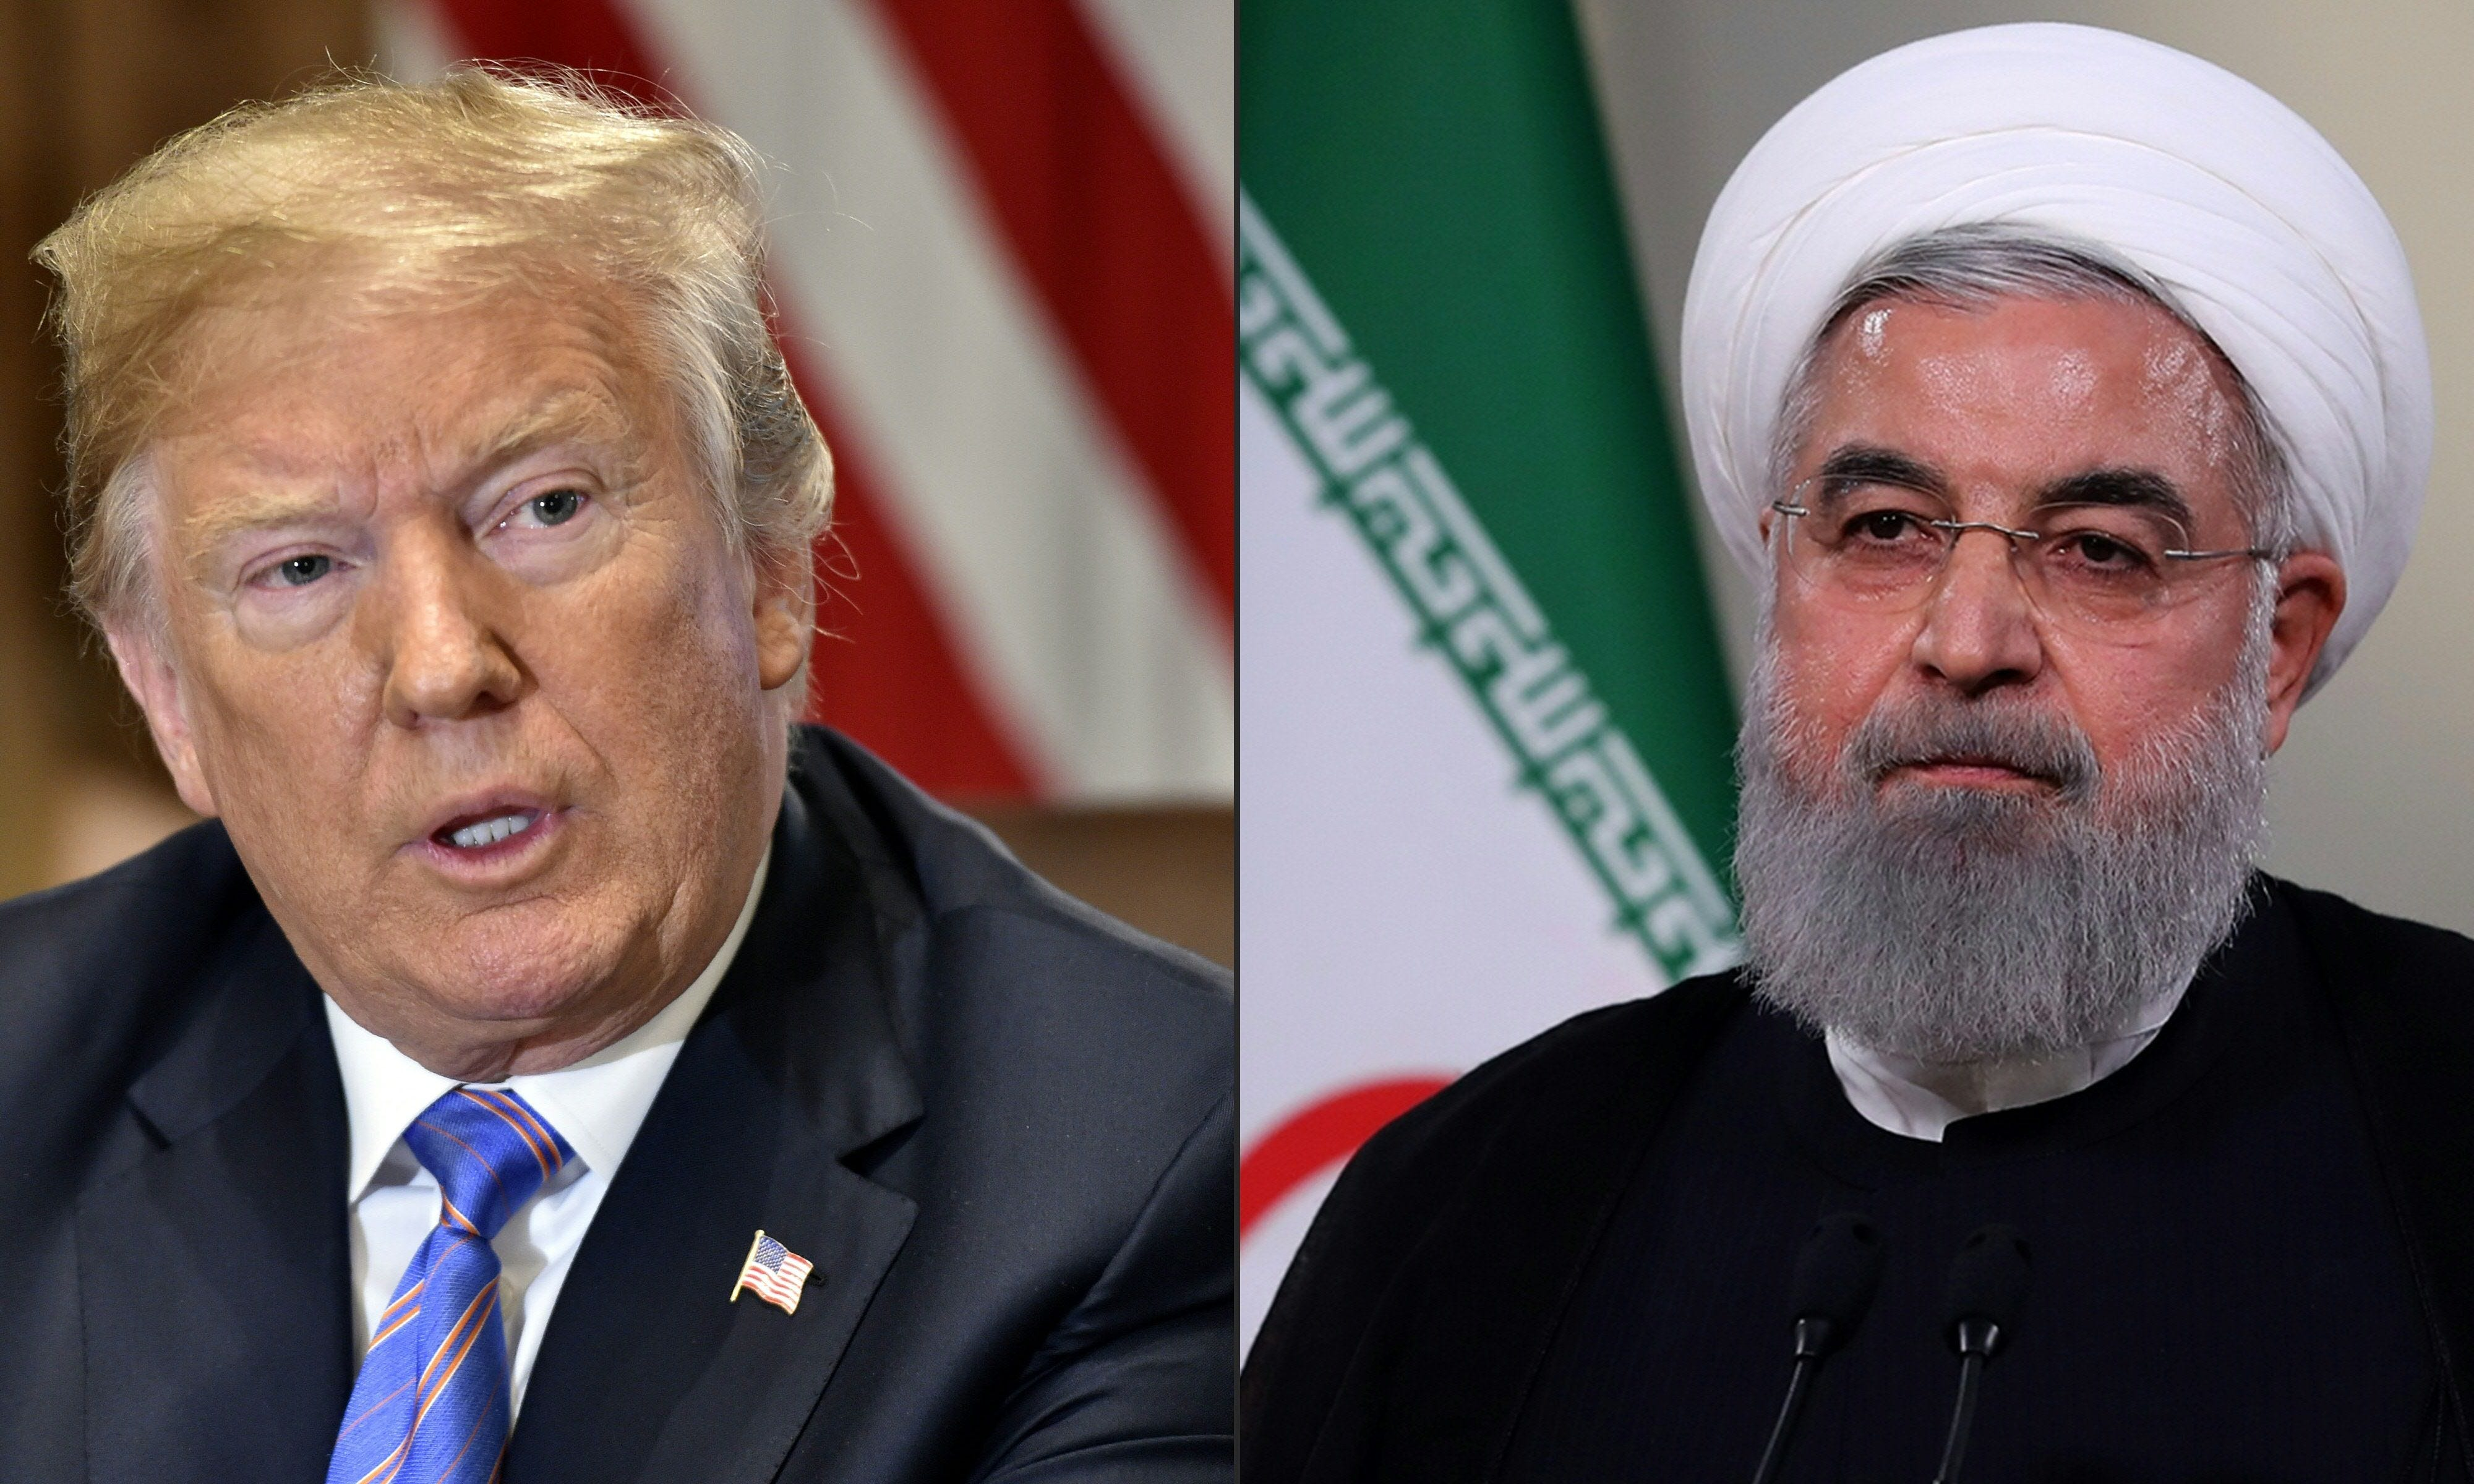 Trump says he's open to meeting Iranian leaders at September UN session